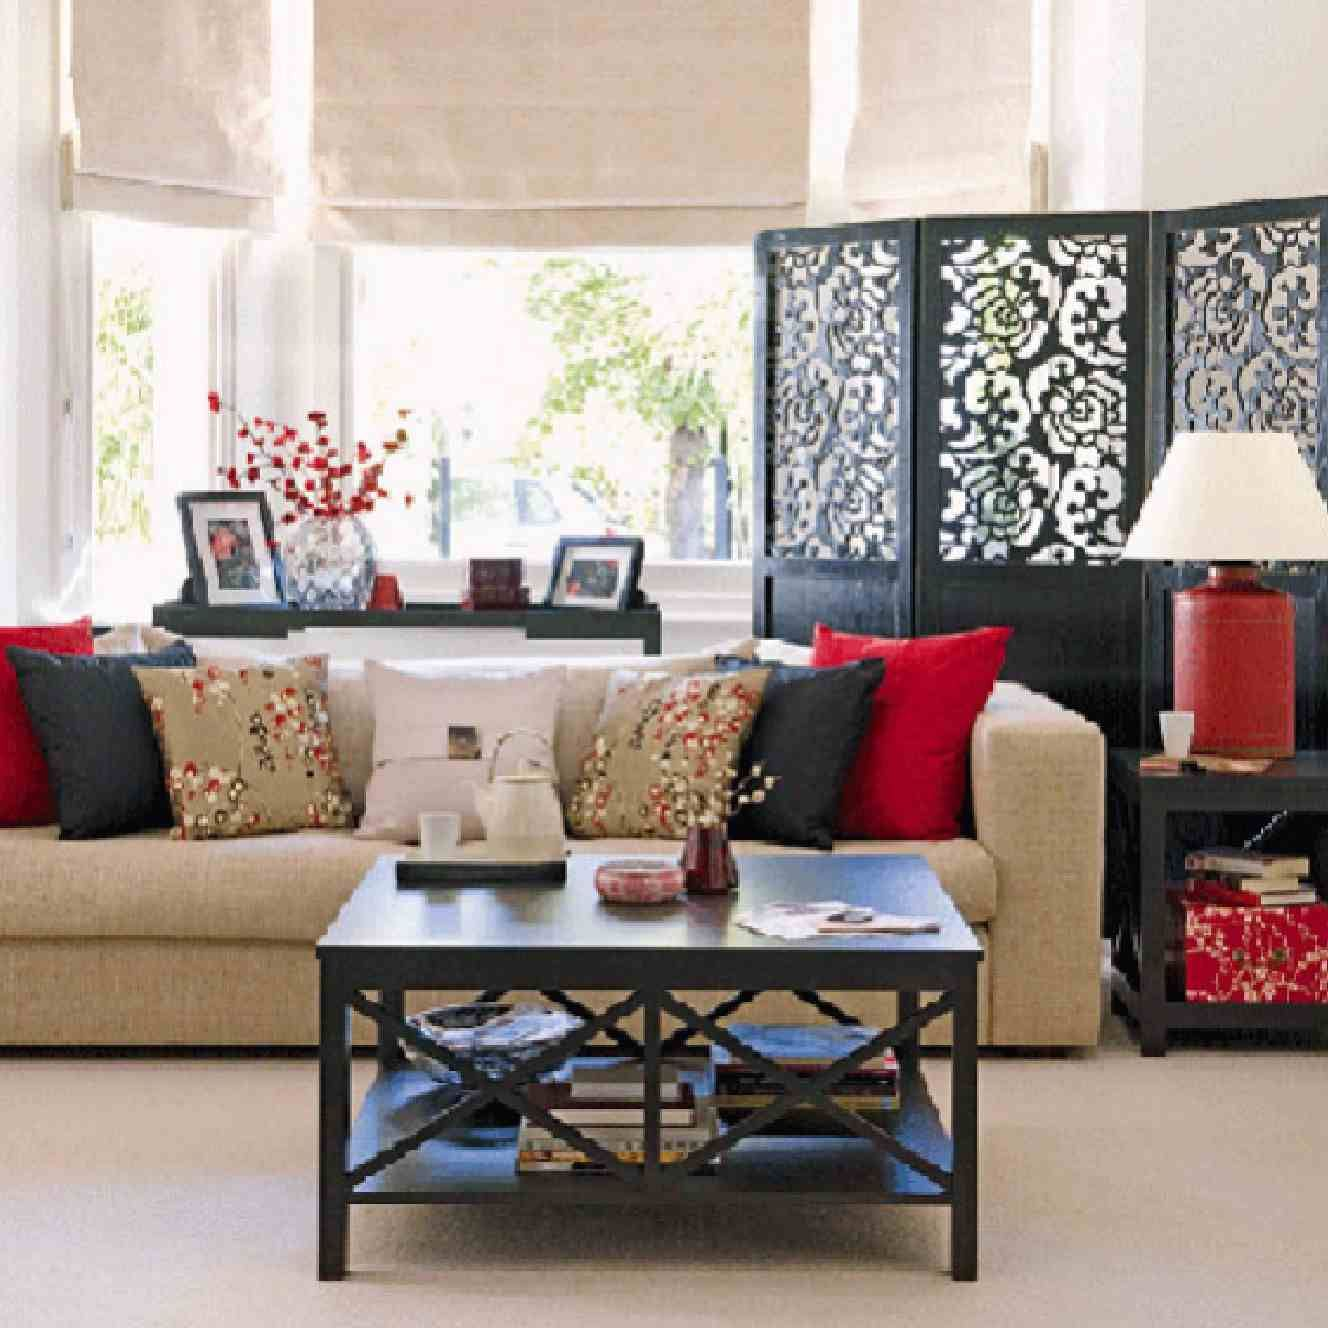 Asian Design Living Room Glamorous Country Living Room Furniture At Its Finest  Modern Living Room Design Inspiration